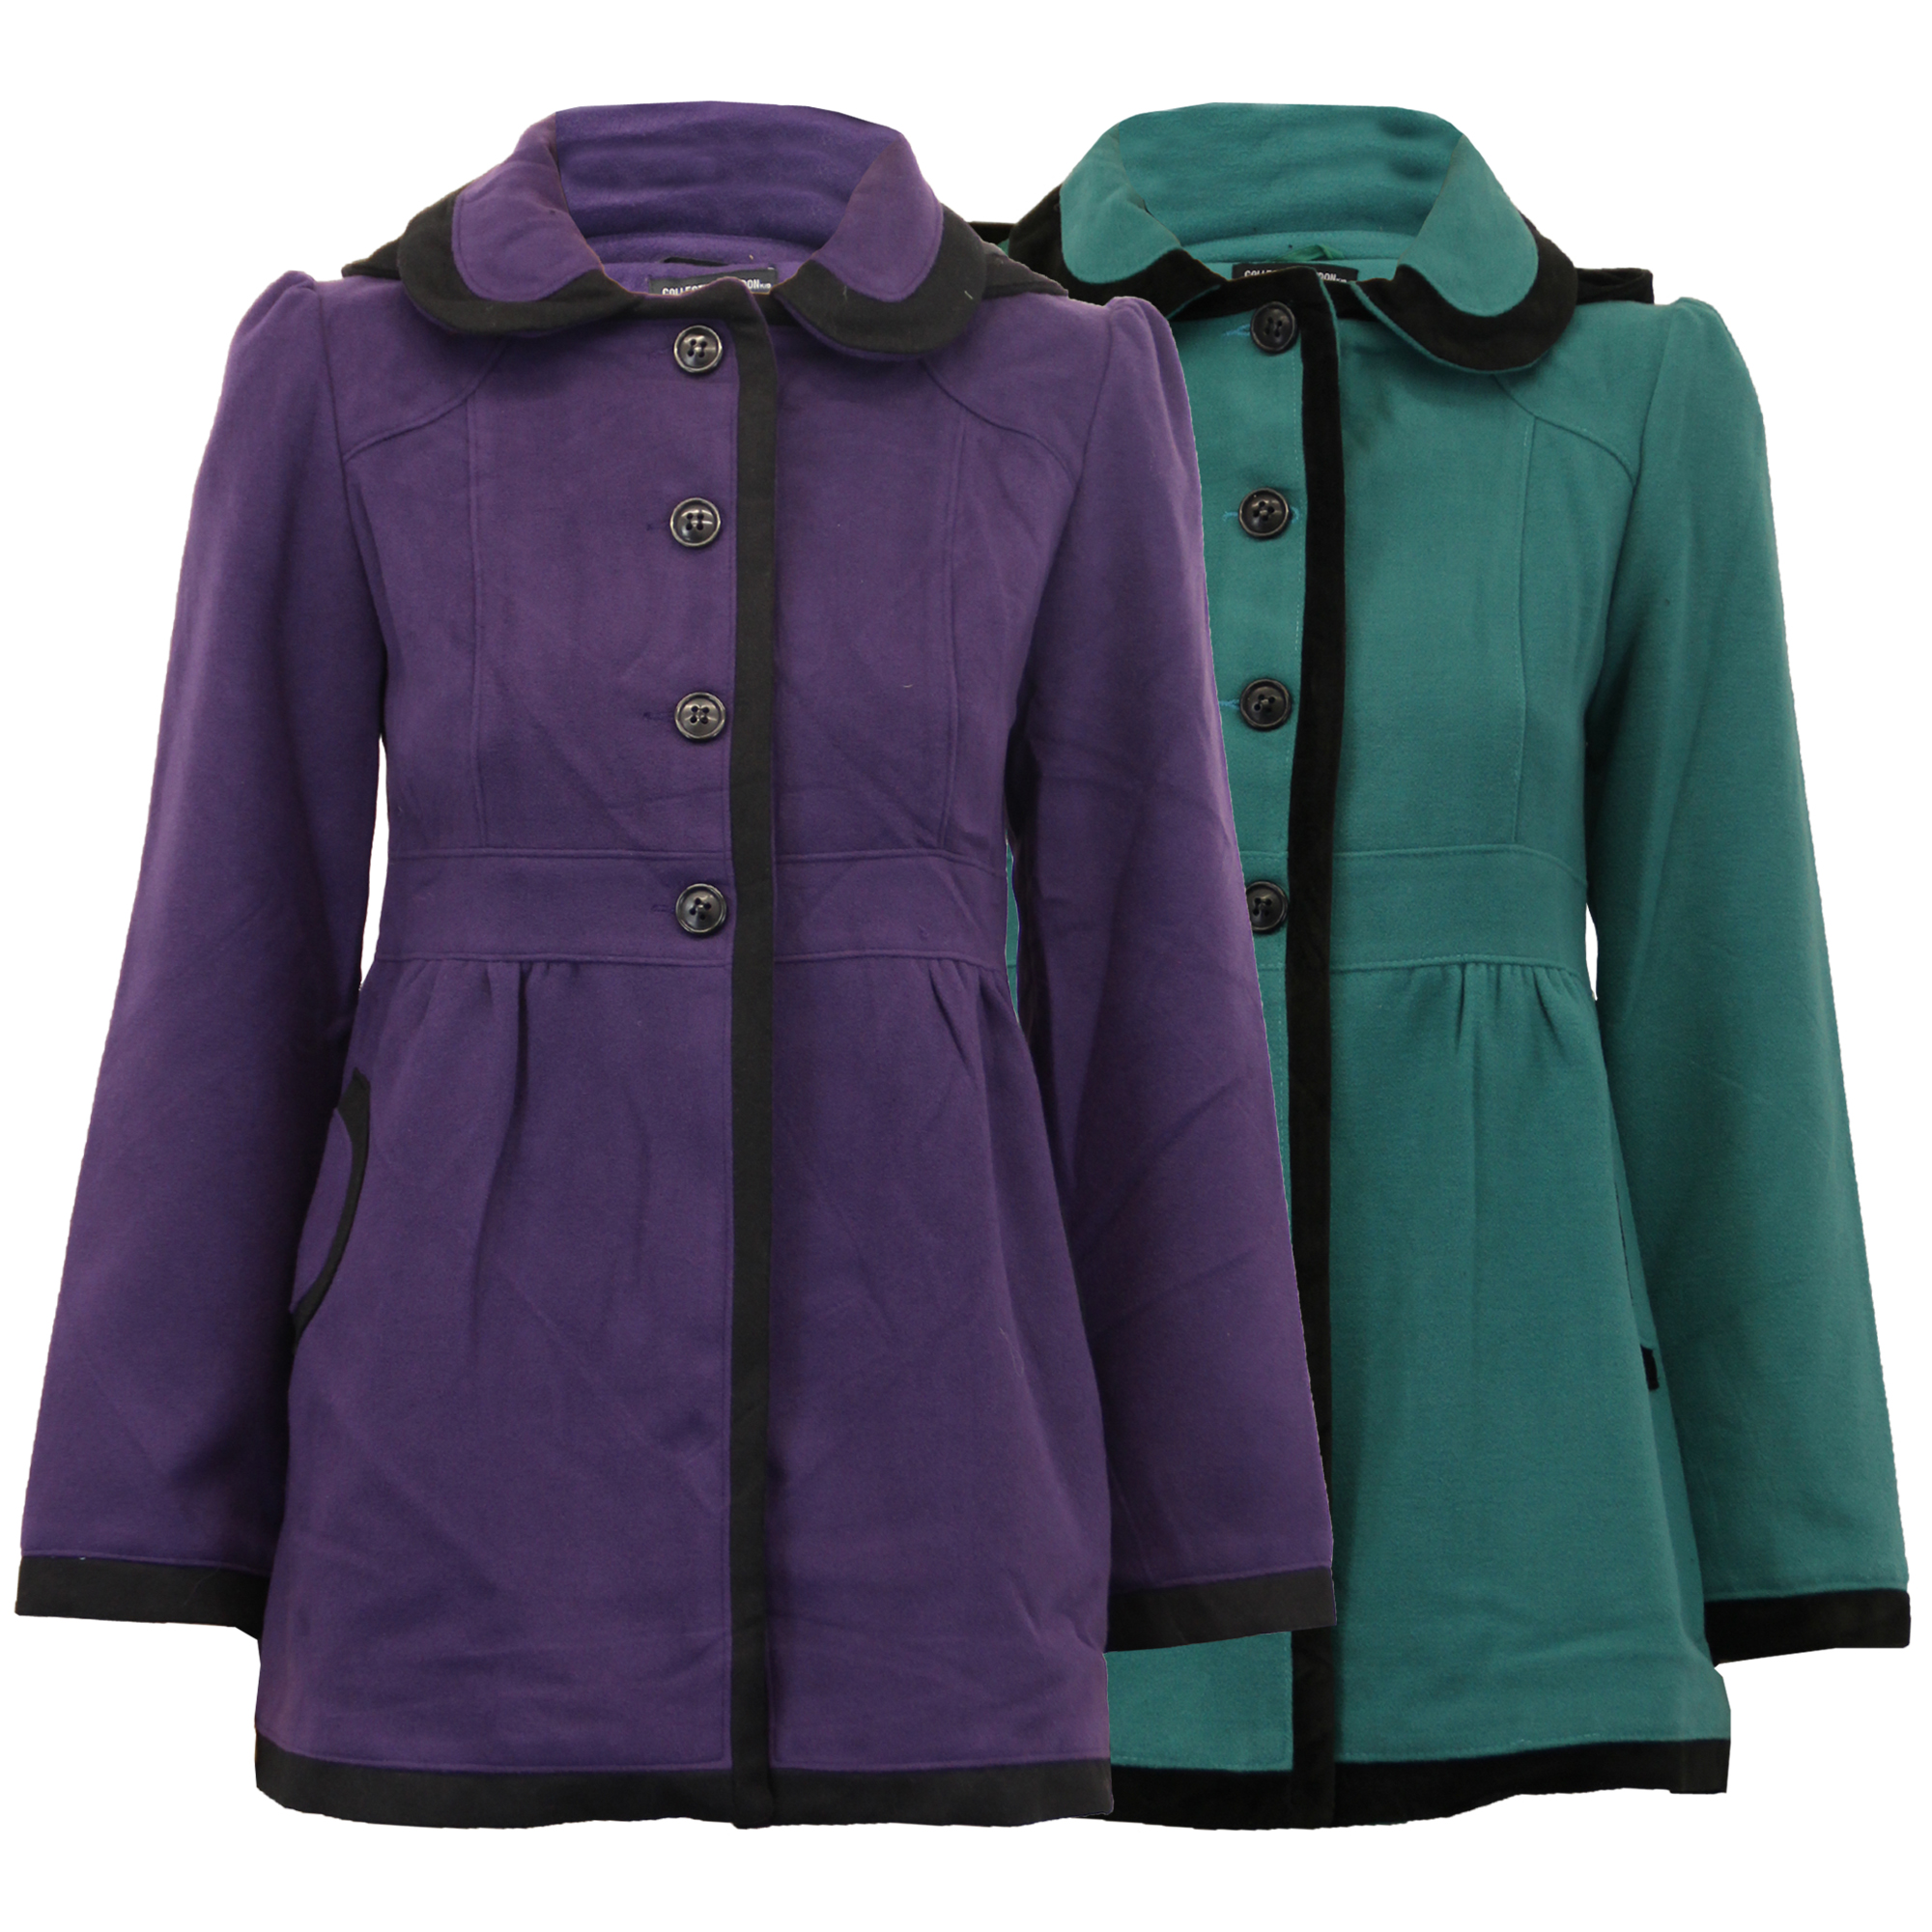 Find a great selection of kids' coats & jackets at distrib-wjmx2fn9.ga Shop fleece jackets, raincoats, vests & more. Totally free shipping & returns.